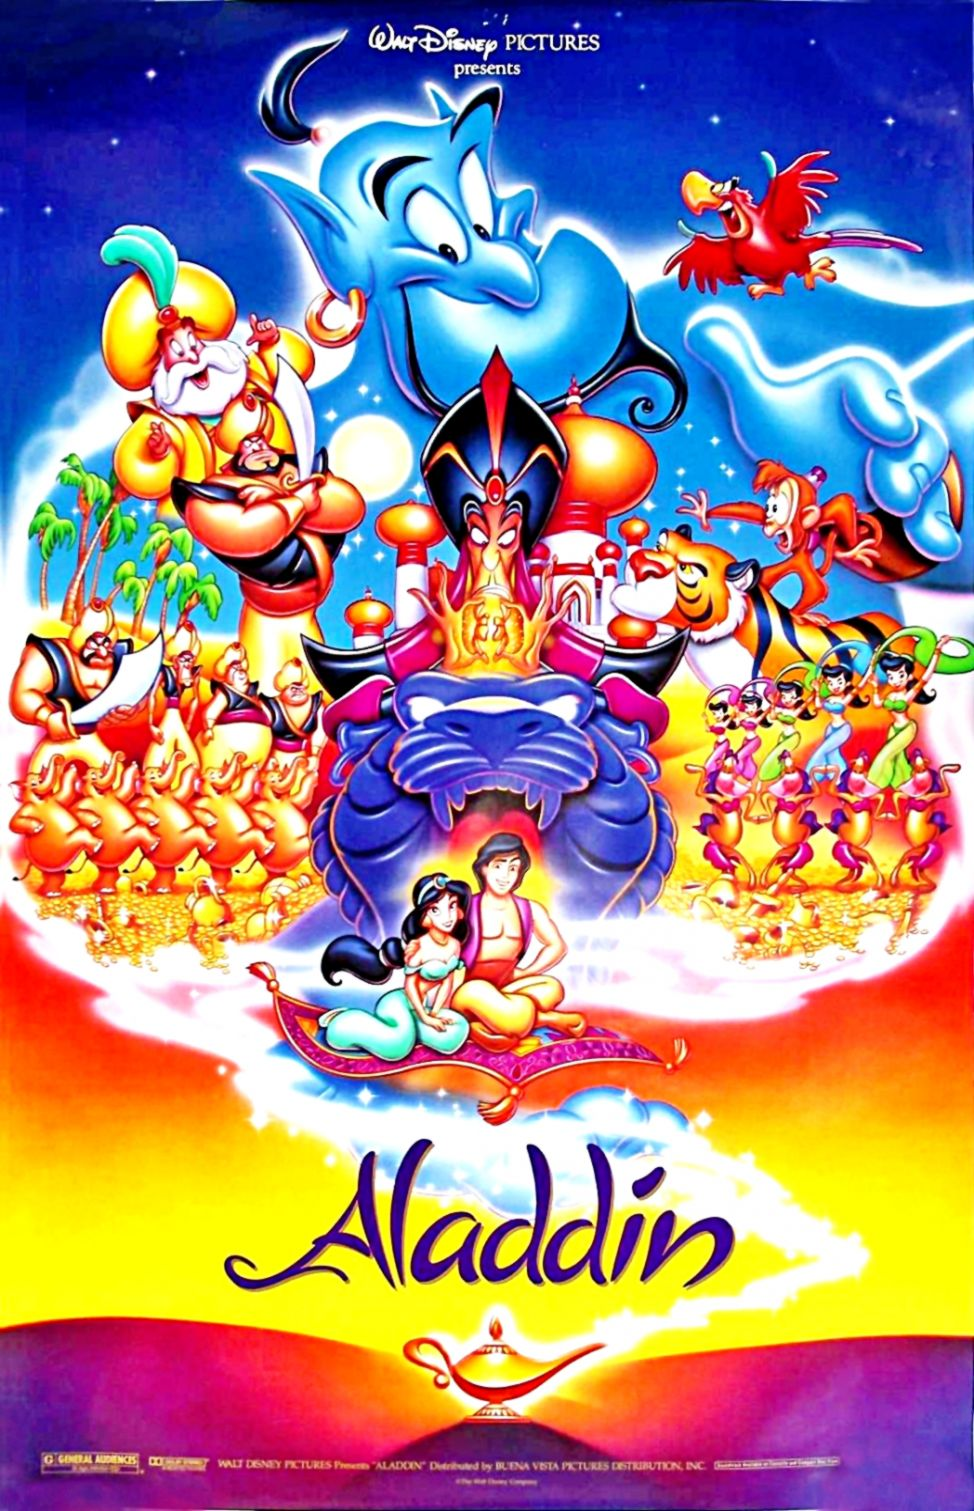 Aladdin Hd Wallpapers | Wallpapers Gallery